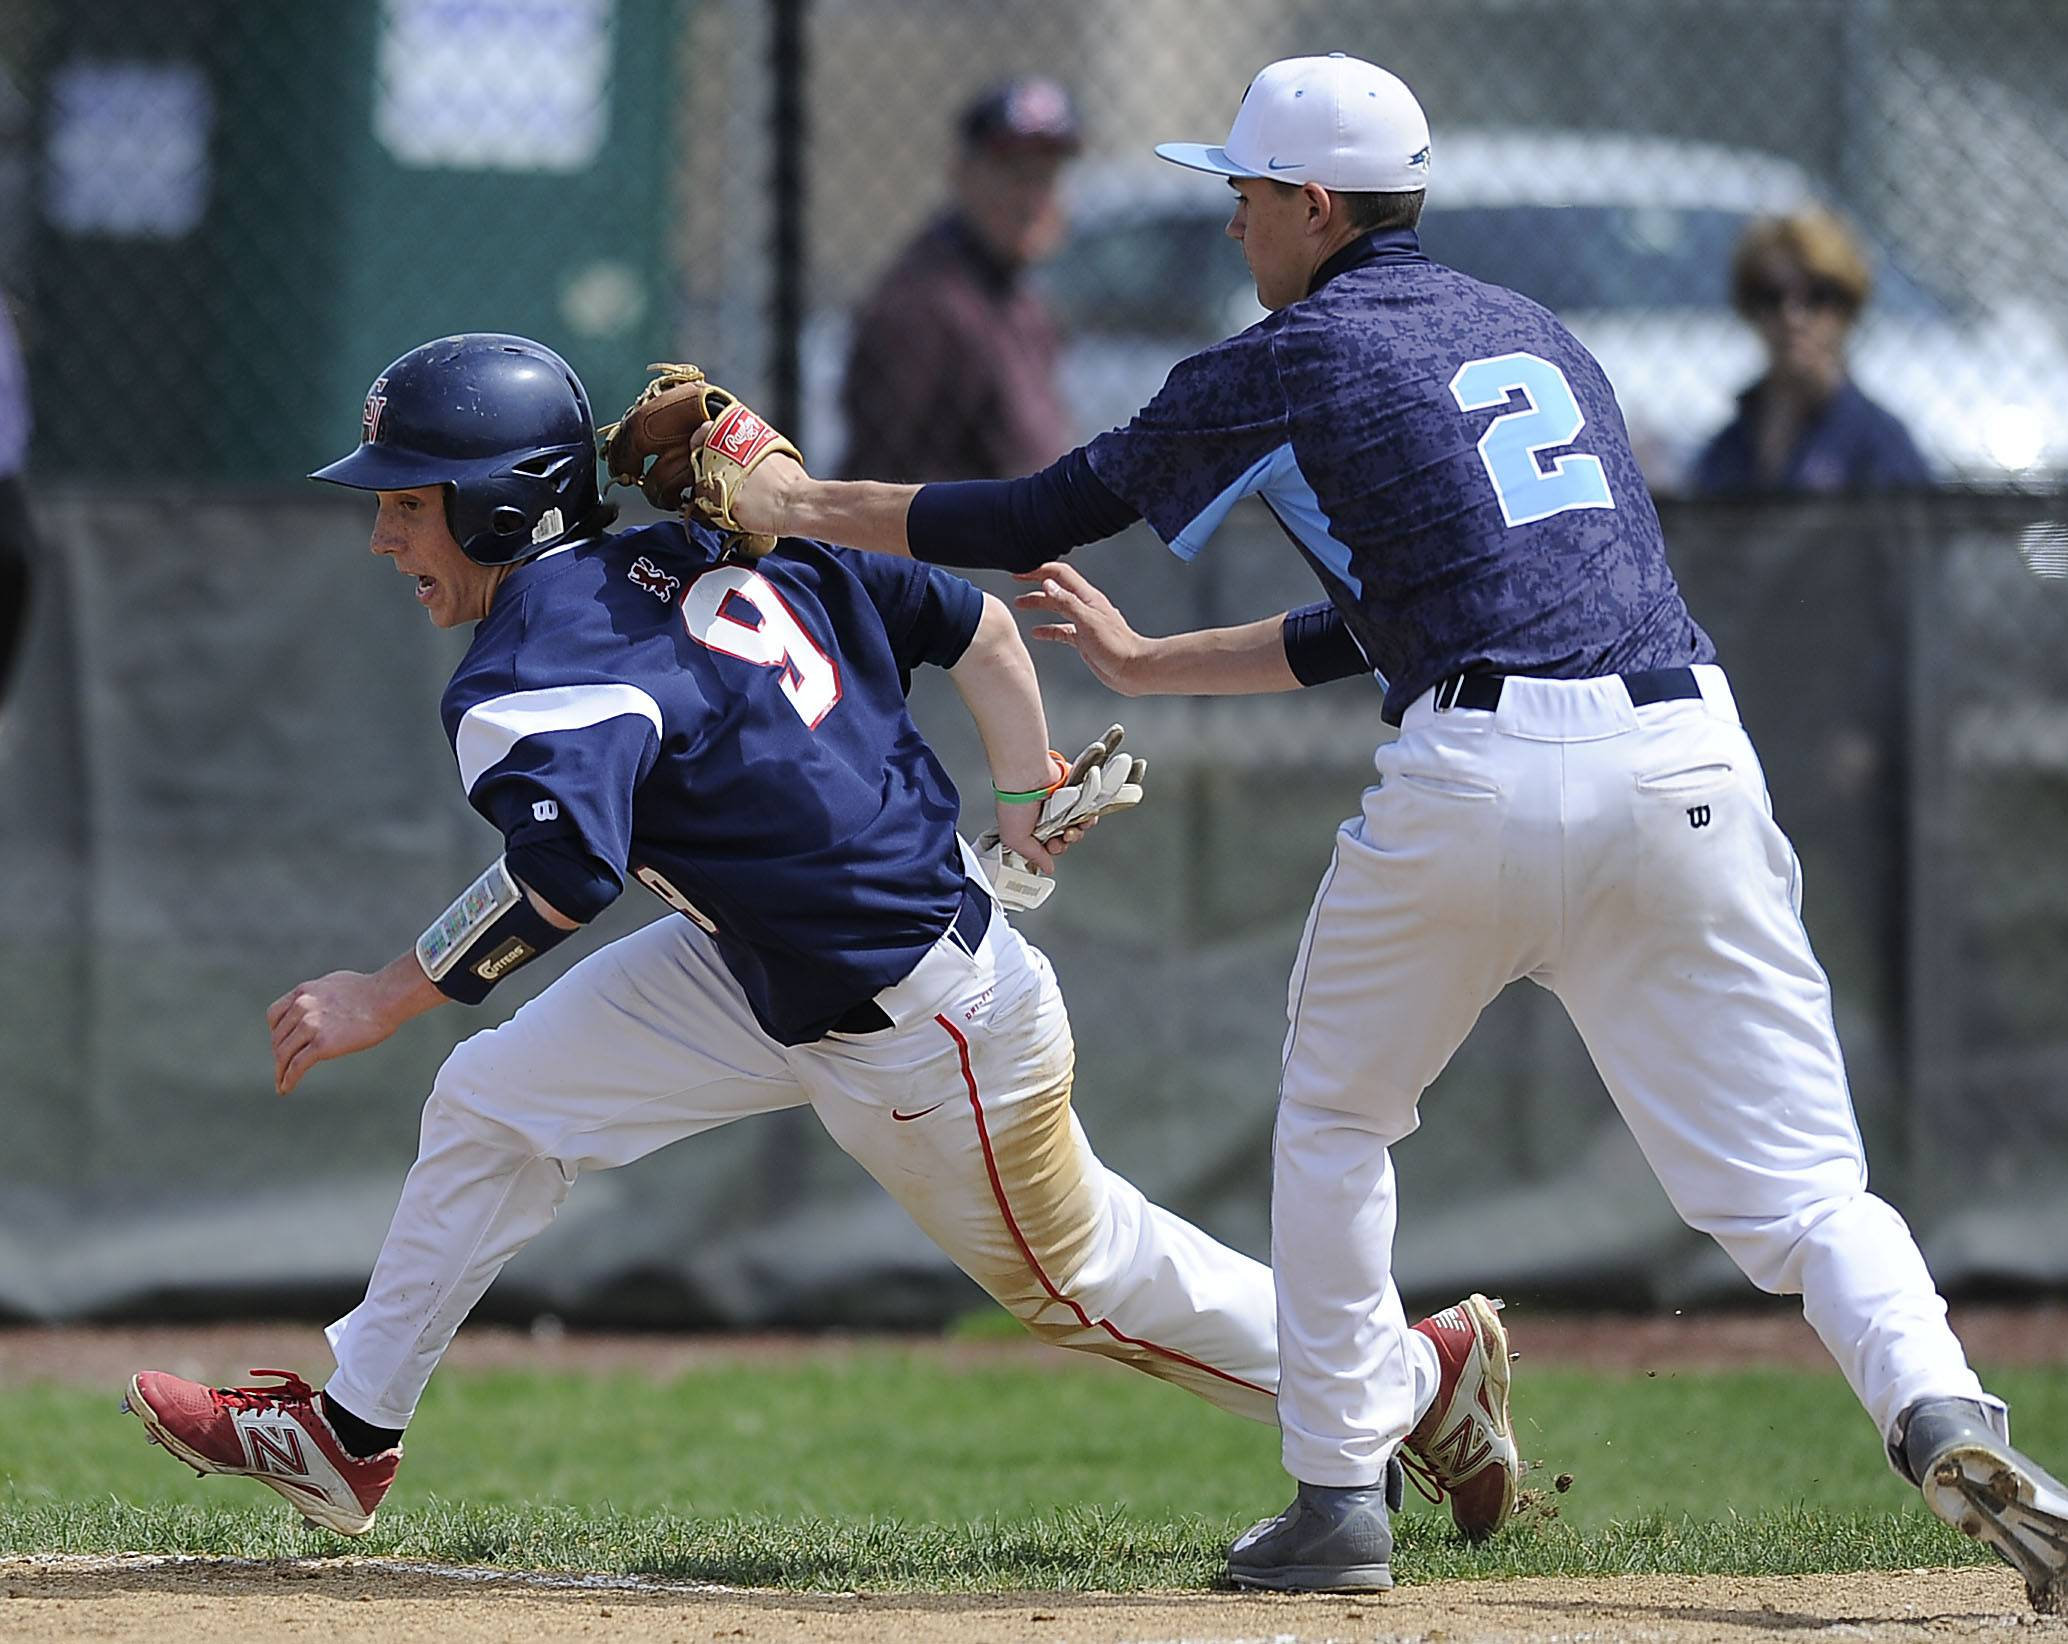 Prospect's Justin Placko tags out St. Viator's Matt Darling at the plate after a fourth-inning rundown at Prospect on Saturday.